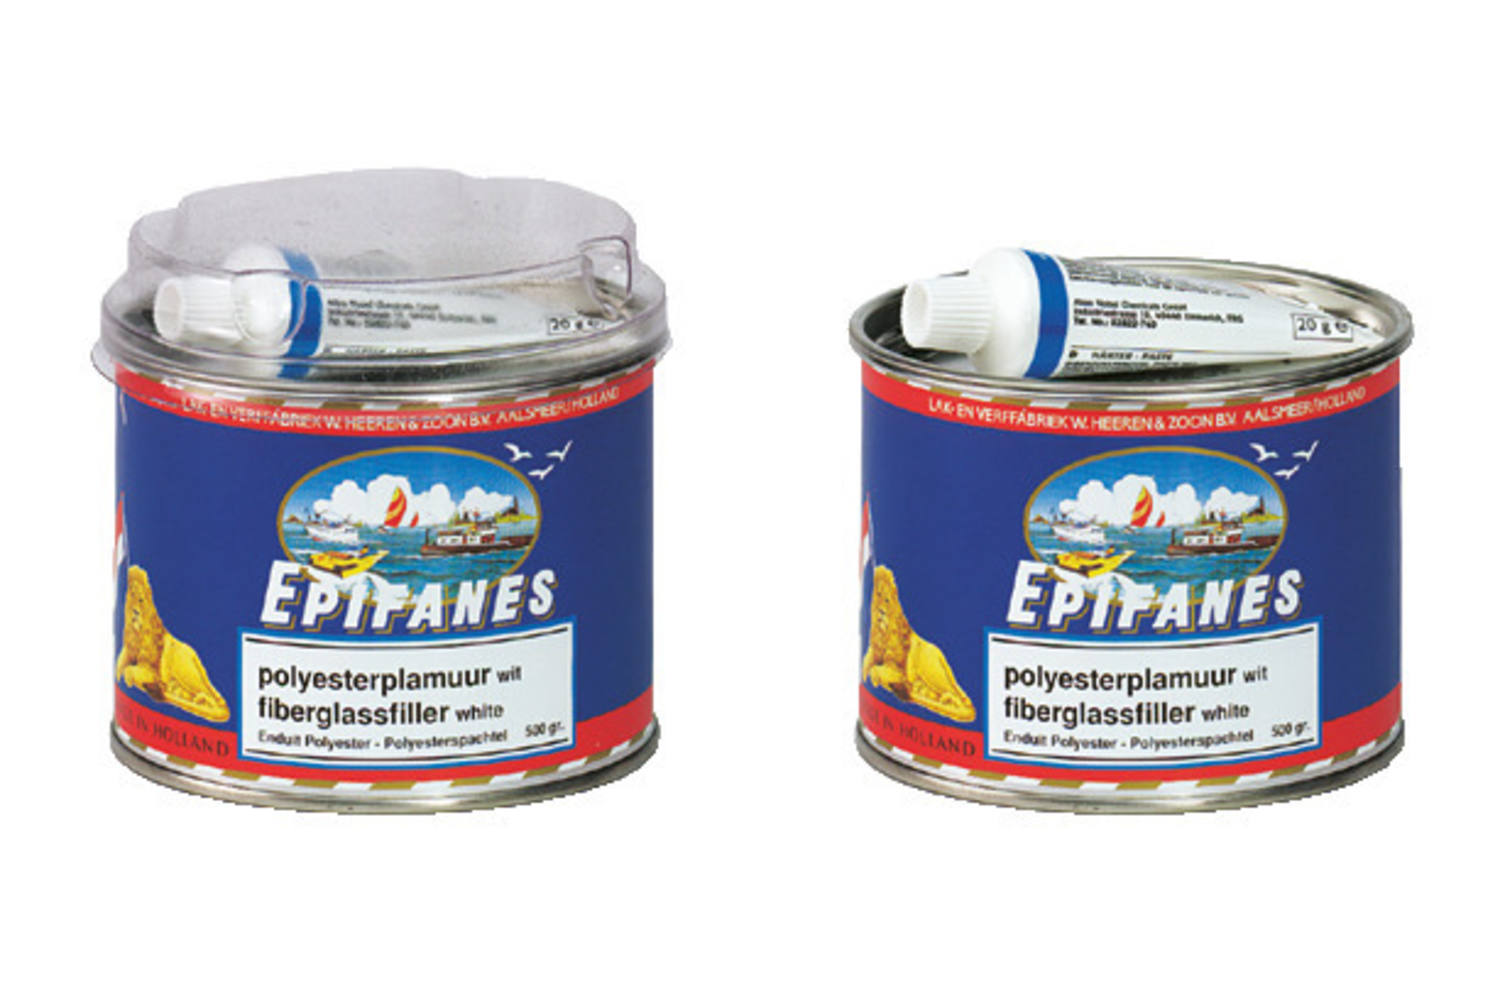 Epifanes Polyesterplamuur wit - 1½kg